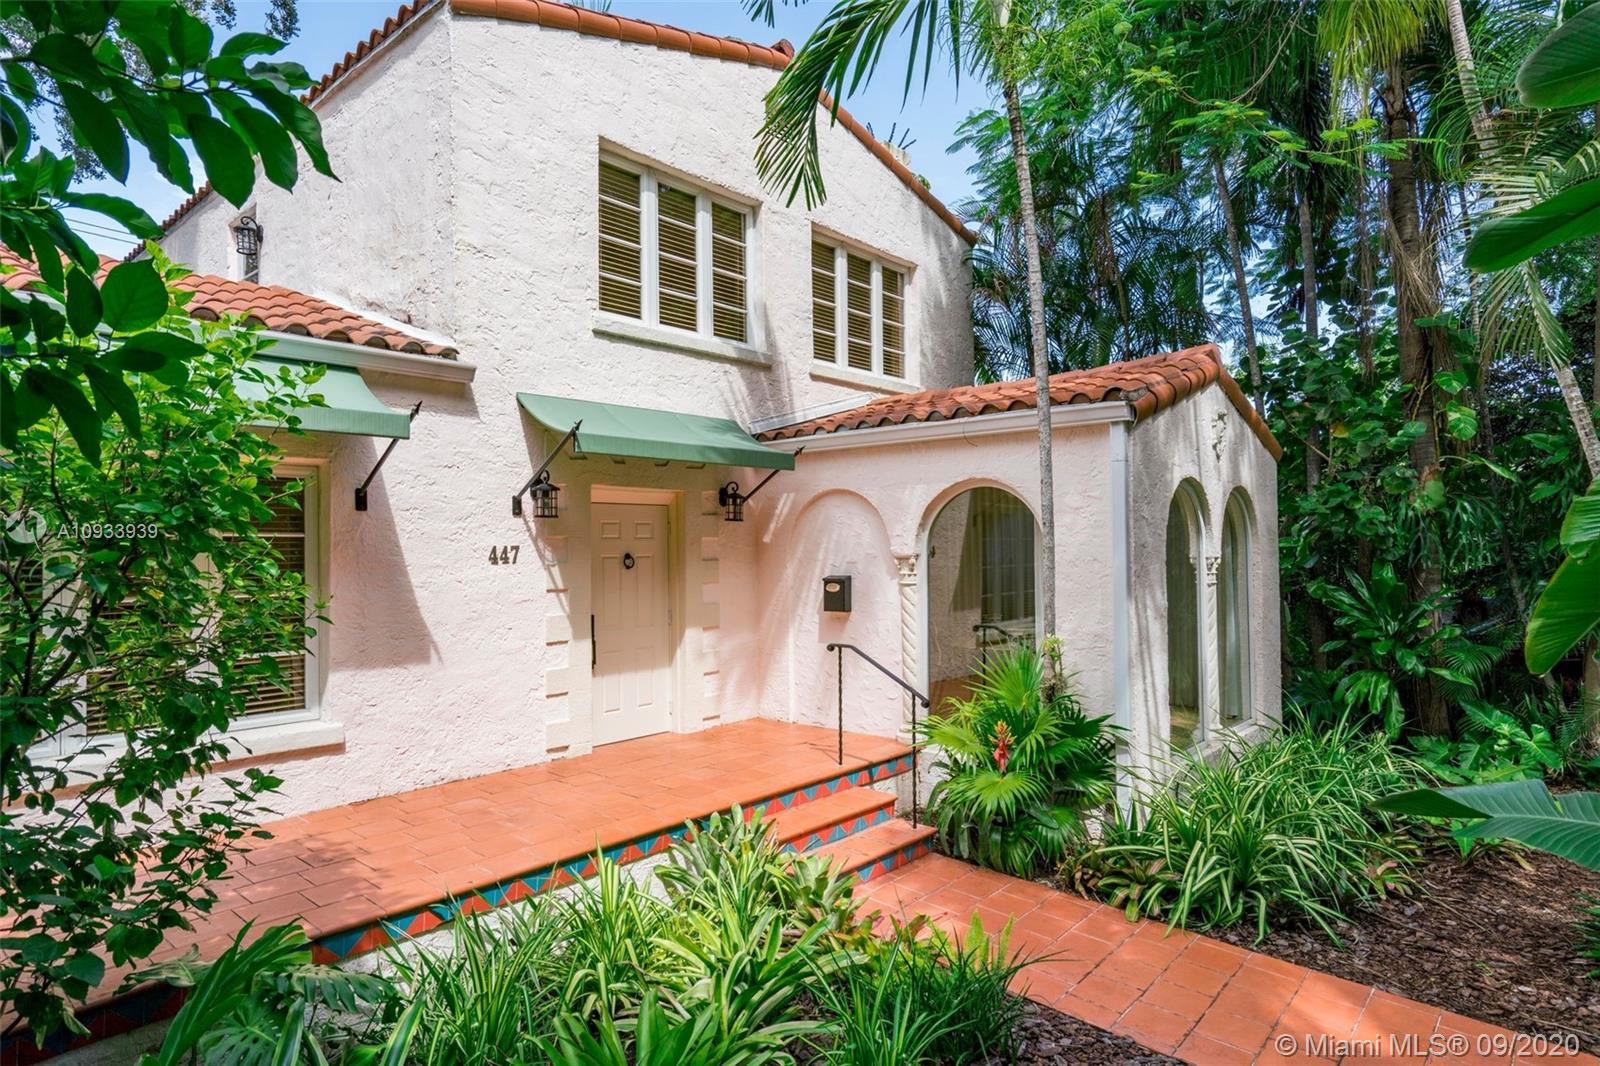 Enticing residential property in the heart of Coral Gables. Walk to Miracle Mile, Restaurant Row, Theaters, and the Trolley route. This landmark Old Spanish house is part of the Alcazar Avenue Historic District and has been featured in the Coral Gables Tour of Kitchens as well as The Villagers Historic House Tour. Fully renovated by Owner/Designer using the latest technology and luxurious finishes throughout.